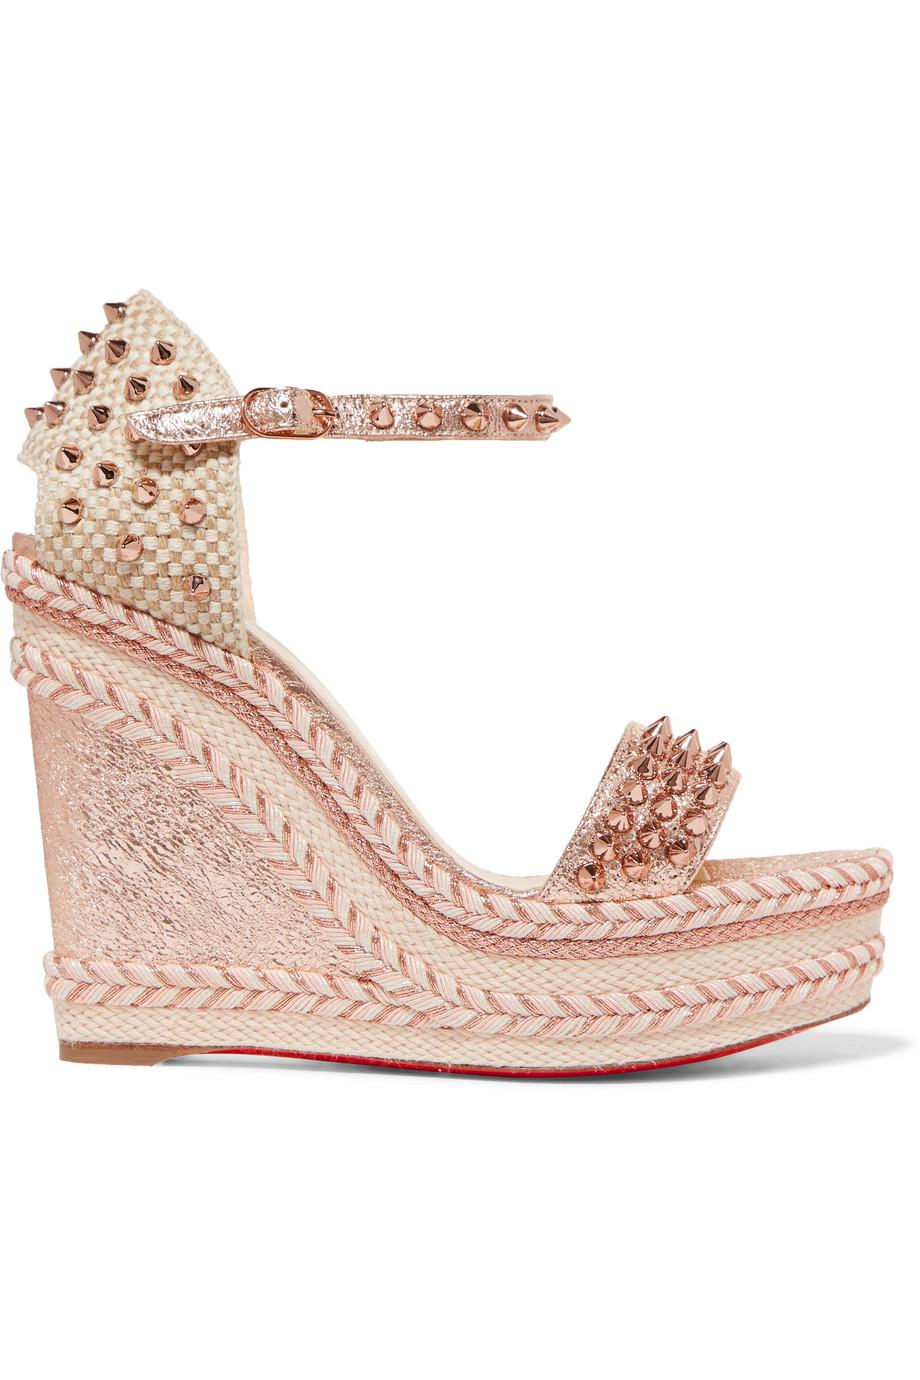 03b5d08ead9 Gallery. Previously sold at  NET-A-PORTER · Women s Christian Louboutin  Spike Women s Wooden Wedge Shoes ...